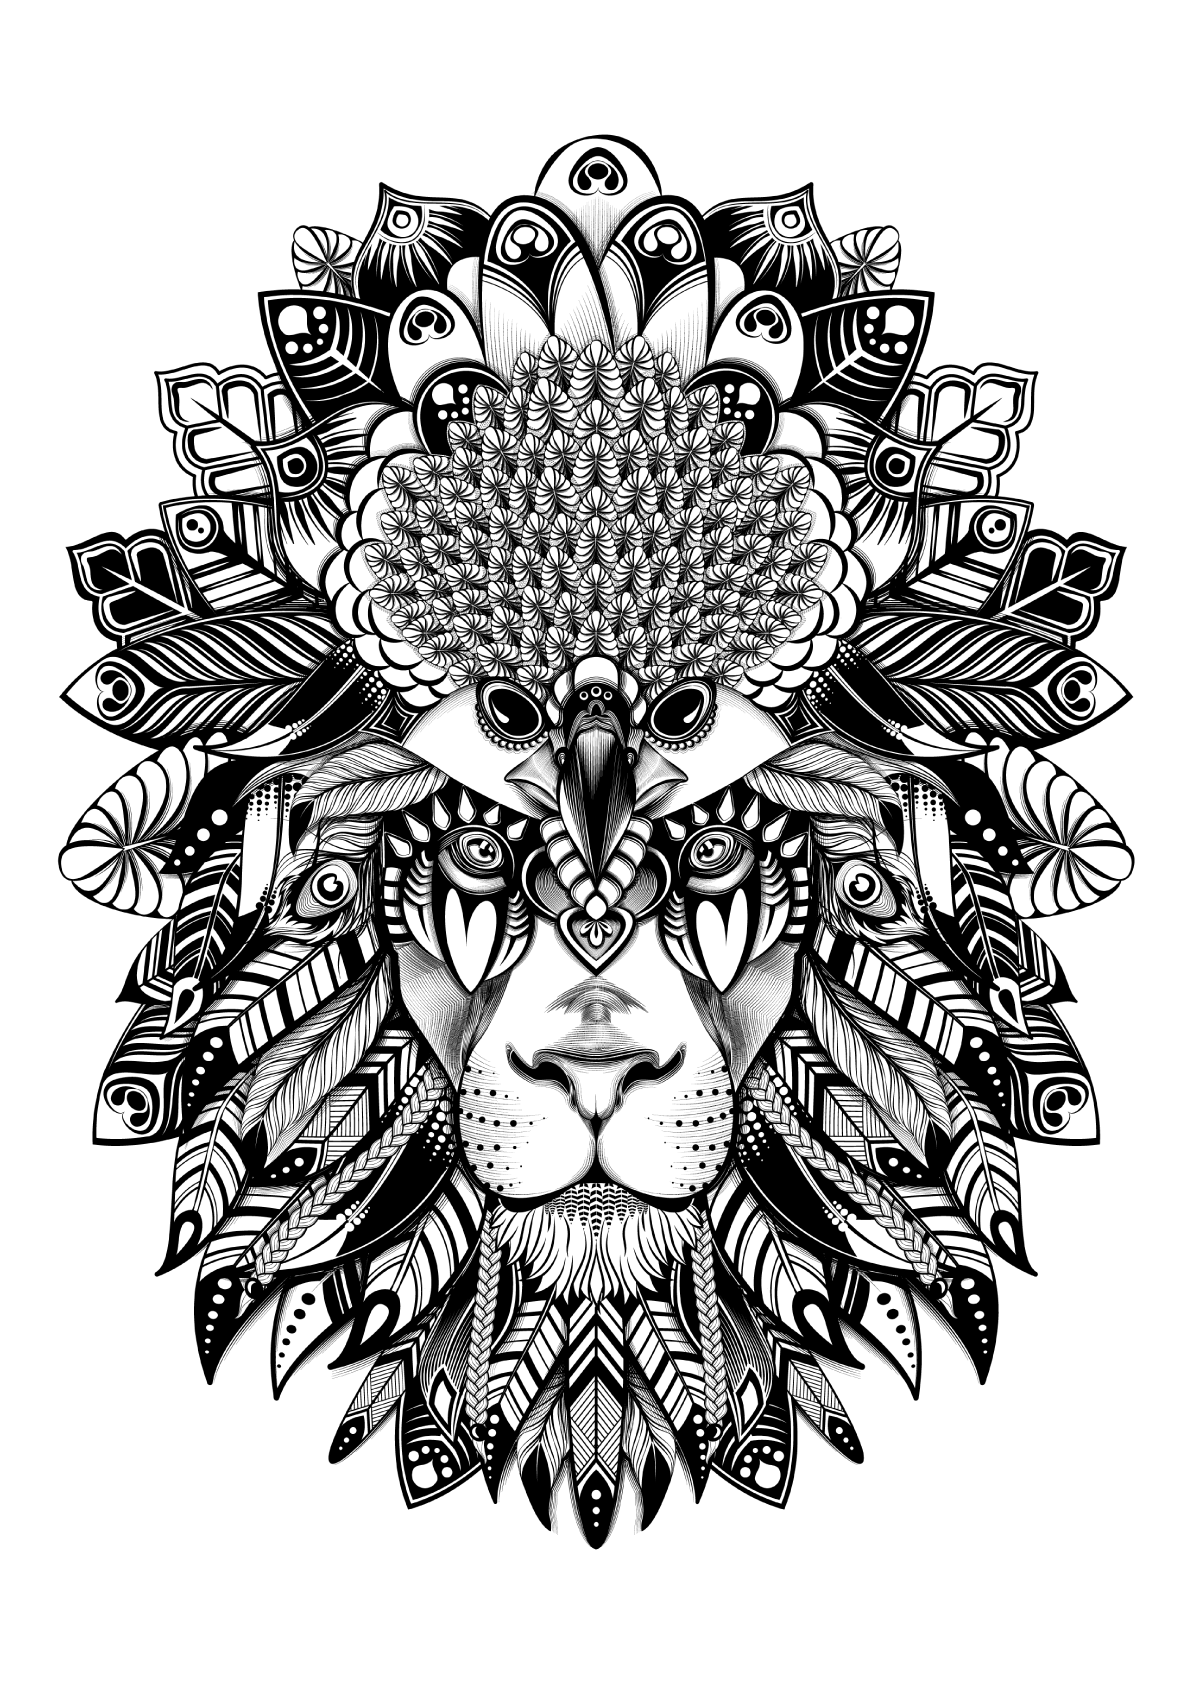 Digital art selected for the daily inspiration tattoos